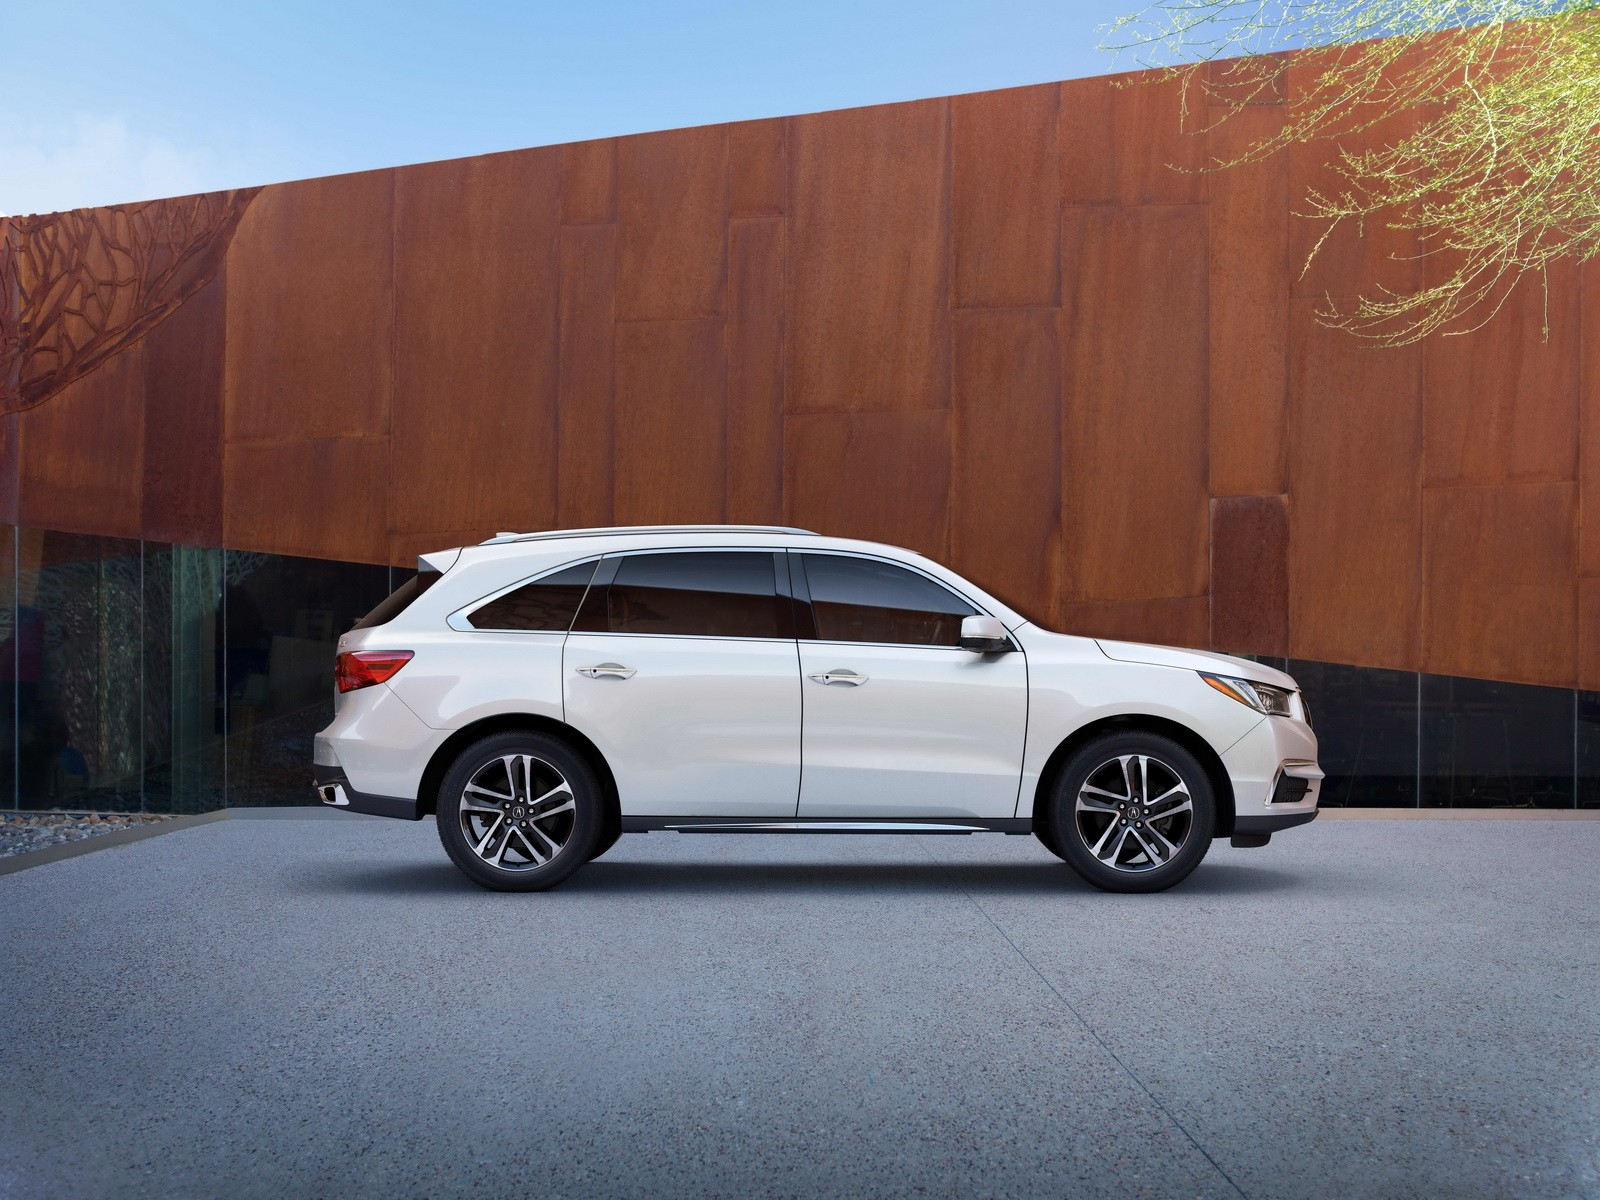 sale mdx usa sales il acura for s cars auto chicago awd kam